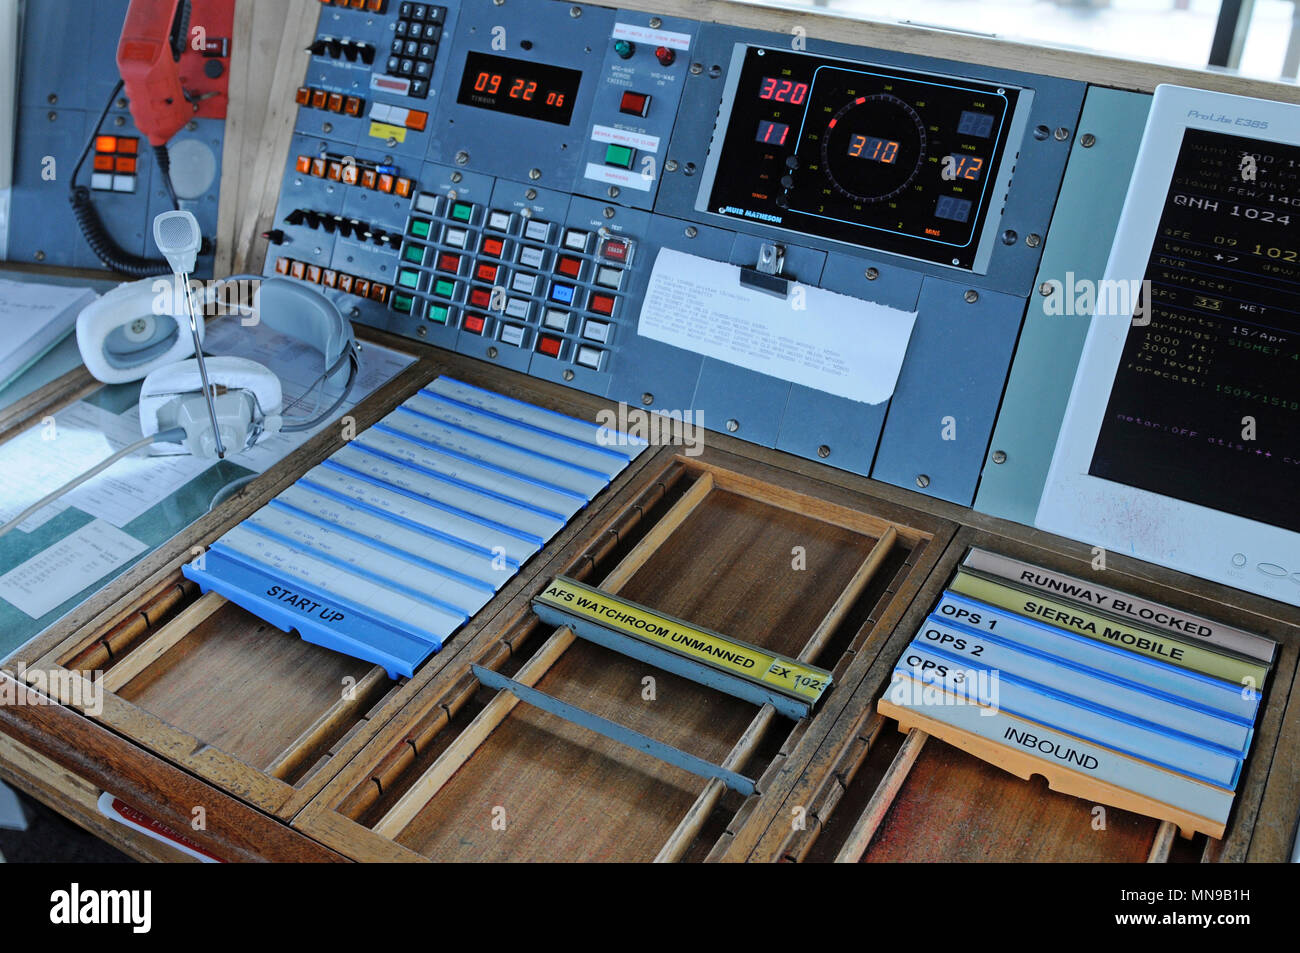 Inside air traffic control tower at Sumburgh airport in the Shetland Isles - Stock Image